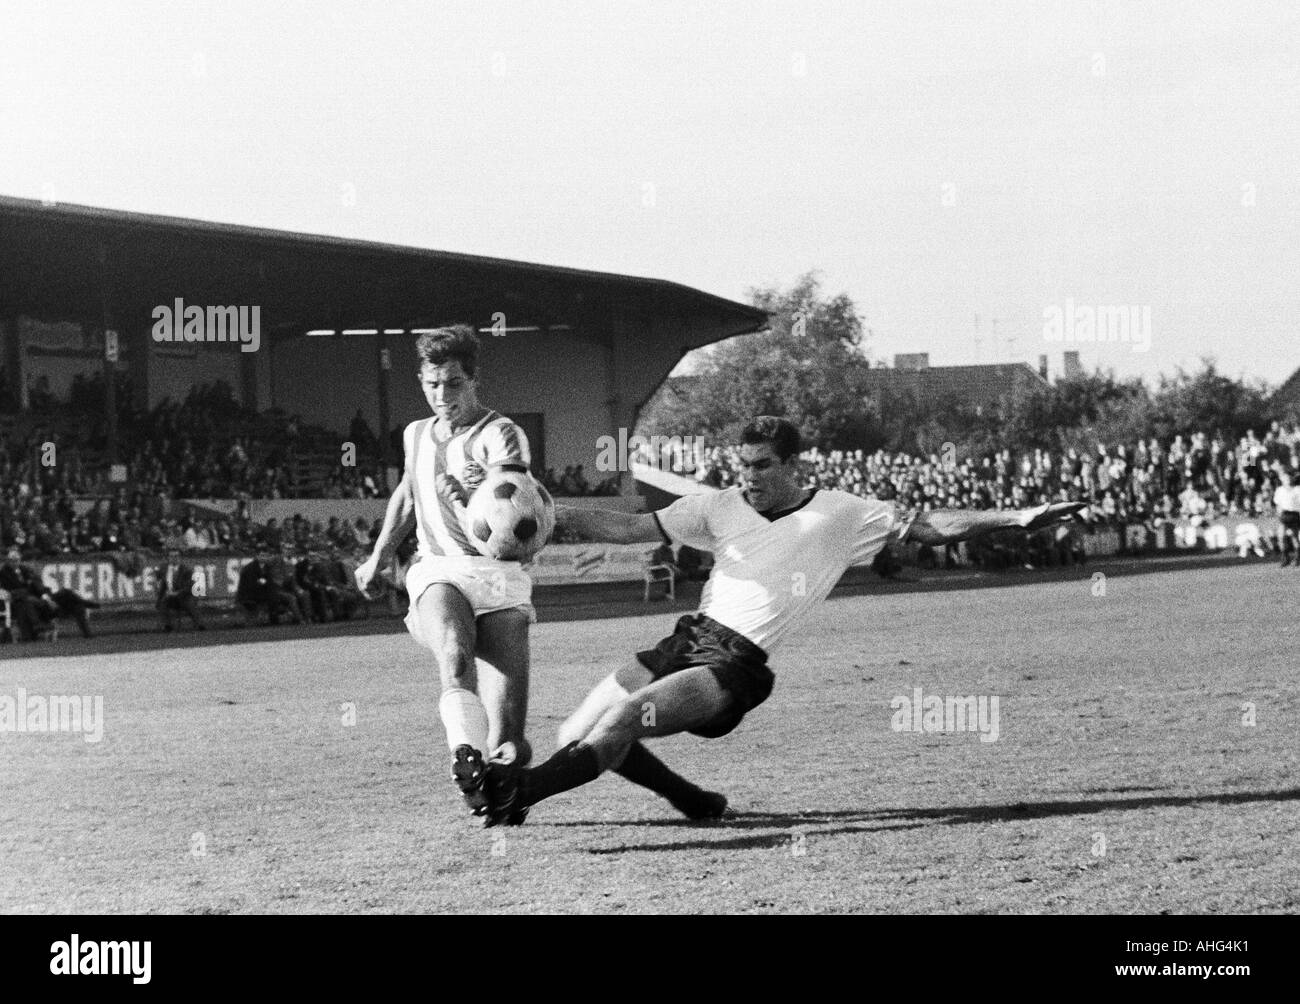 football, Regionalliga West, 1967/1968, ETB Schwarz-Weiss Essen versus Arminia Bielefeld 0:4, Stadium am Uhlenkrug in Essen, scene of the match, duel between Dietmar Erler (Bielefeld, left) and Hans Huelsmann (ETB) - Stock Image